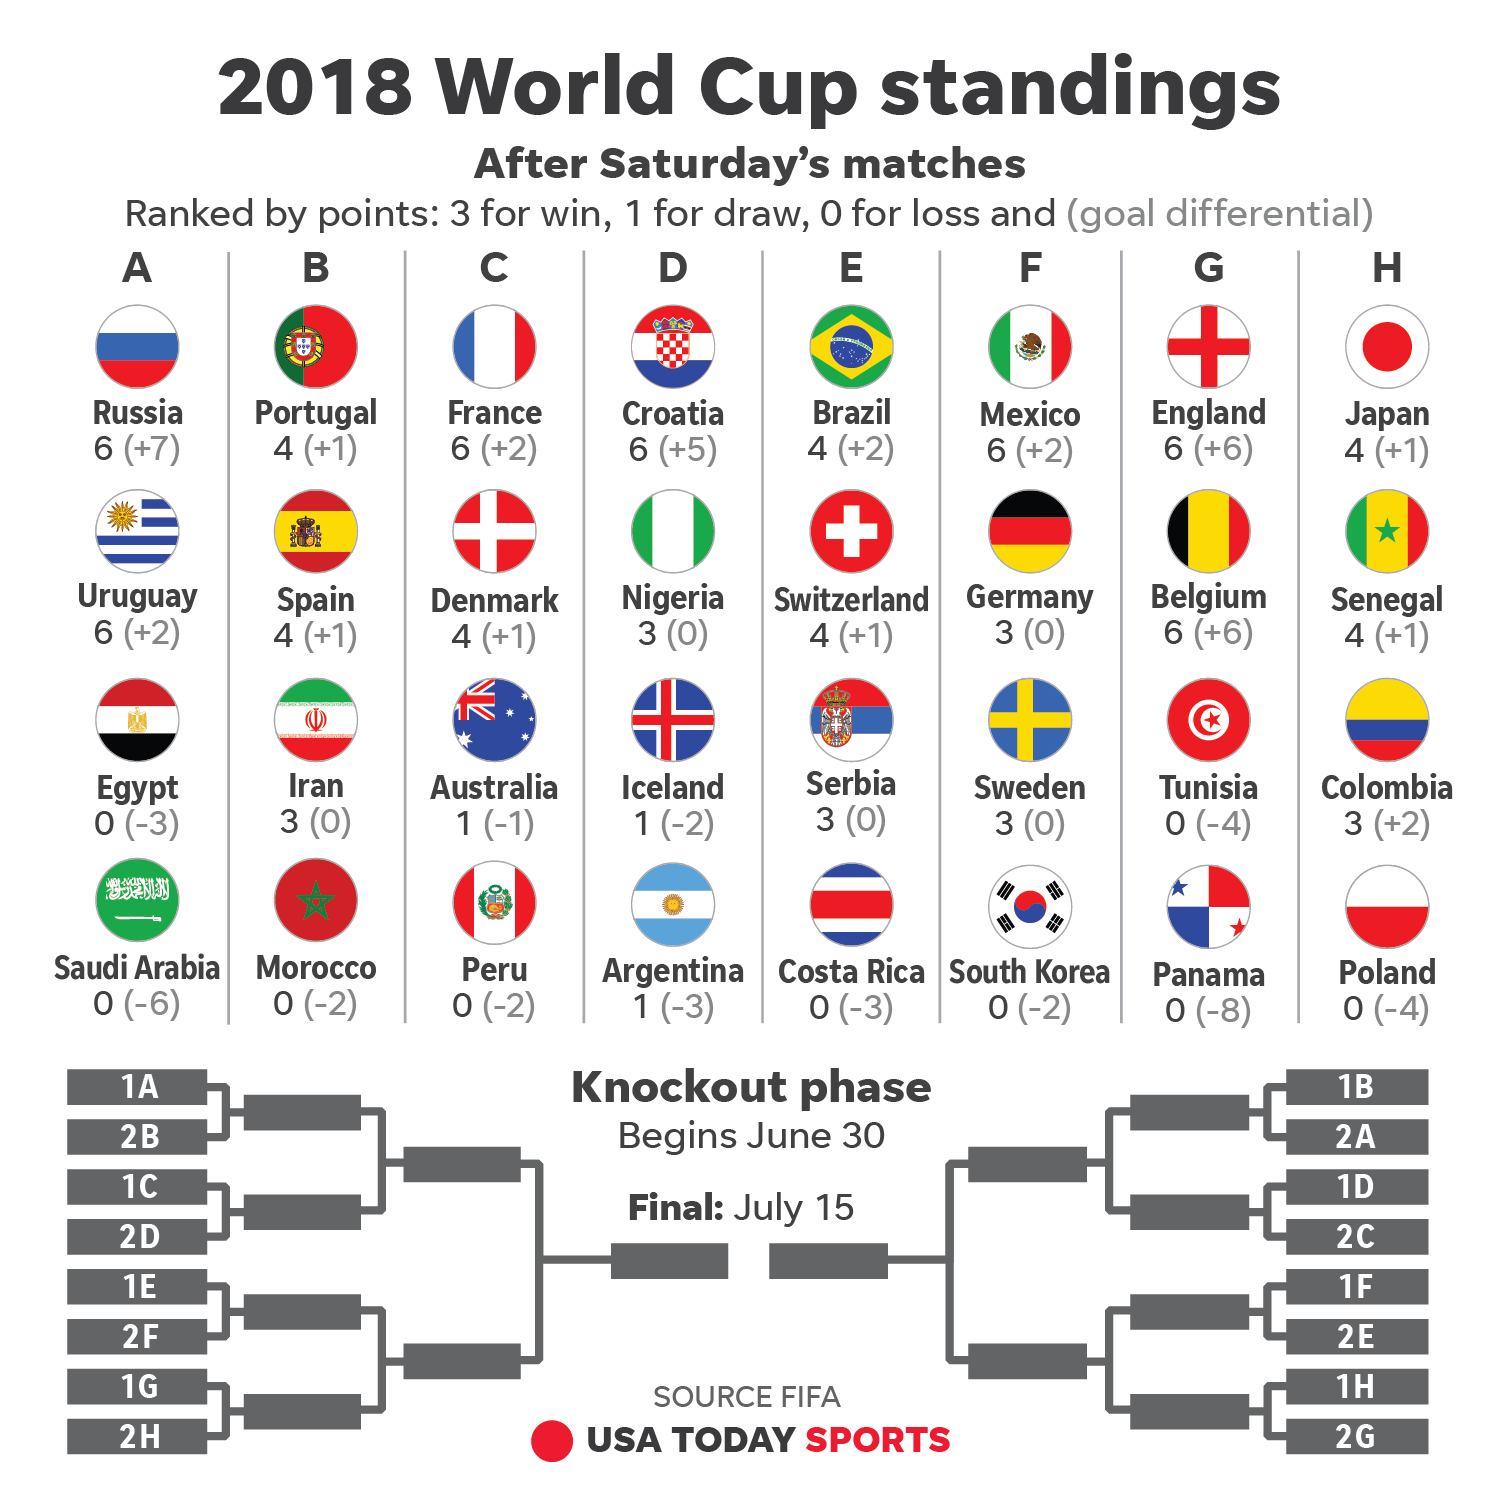 Show me a picture of the world cup tables